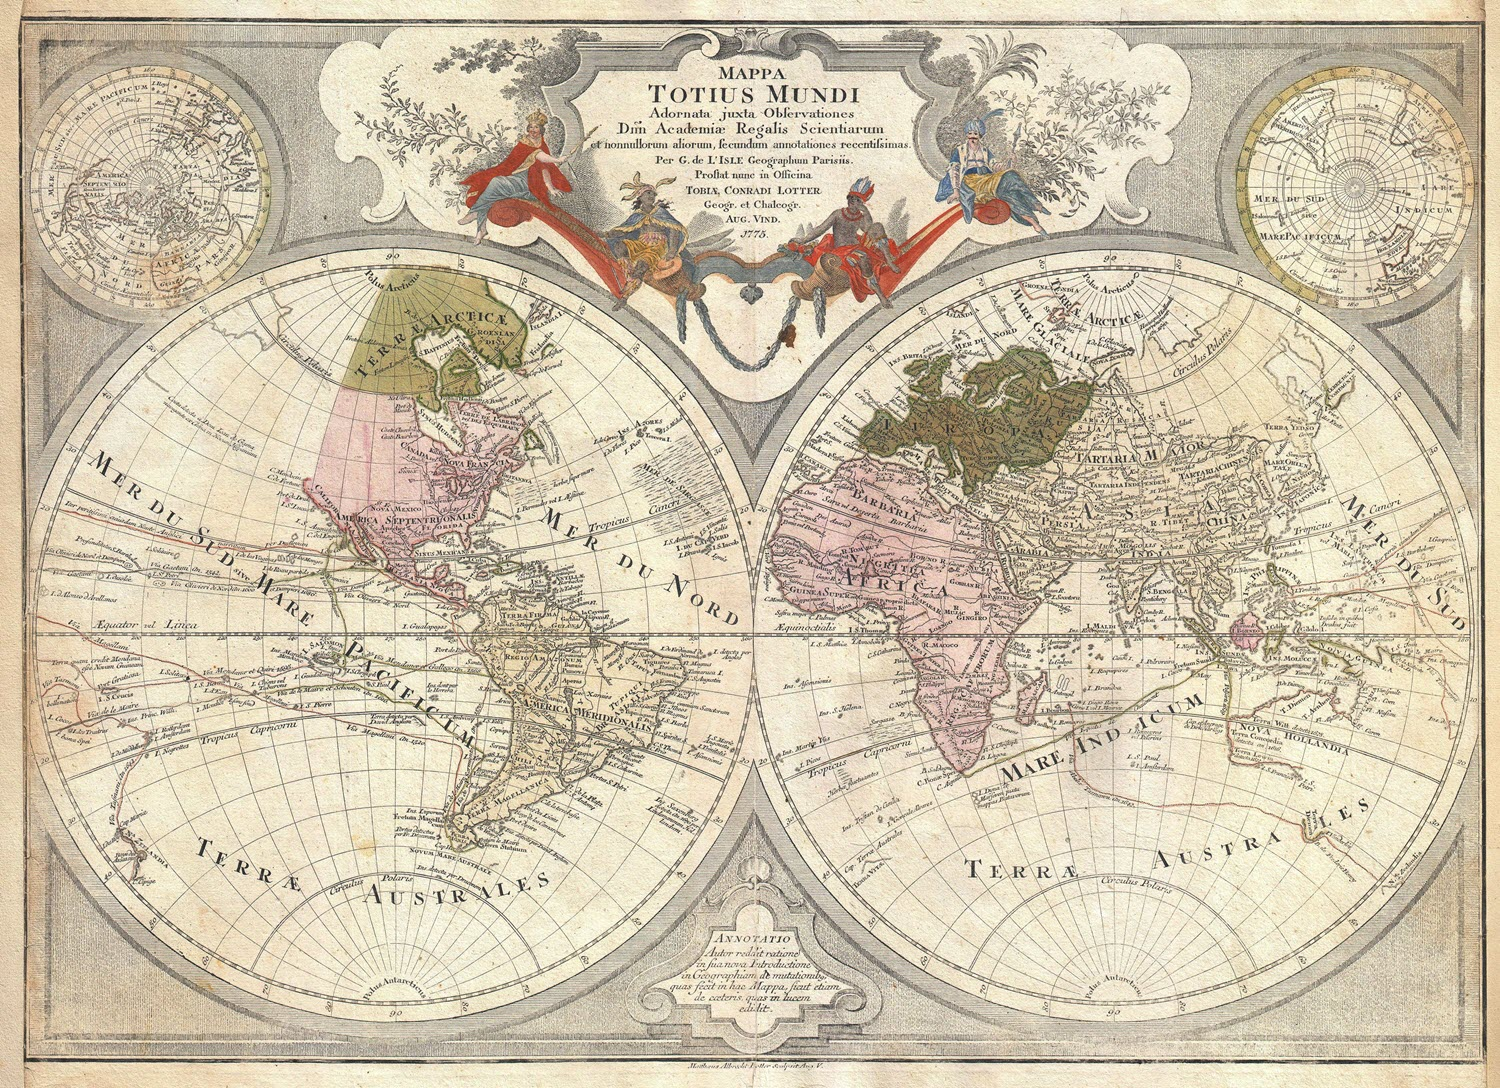 1775 Lotter Map of the World on a Hemisphere Projection - Geographicus / Image in public domain